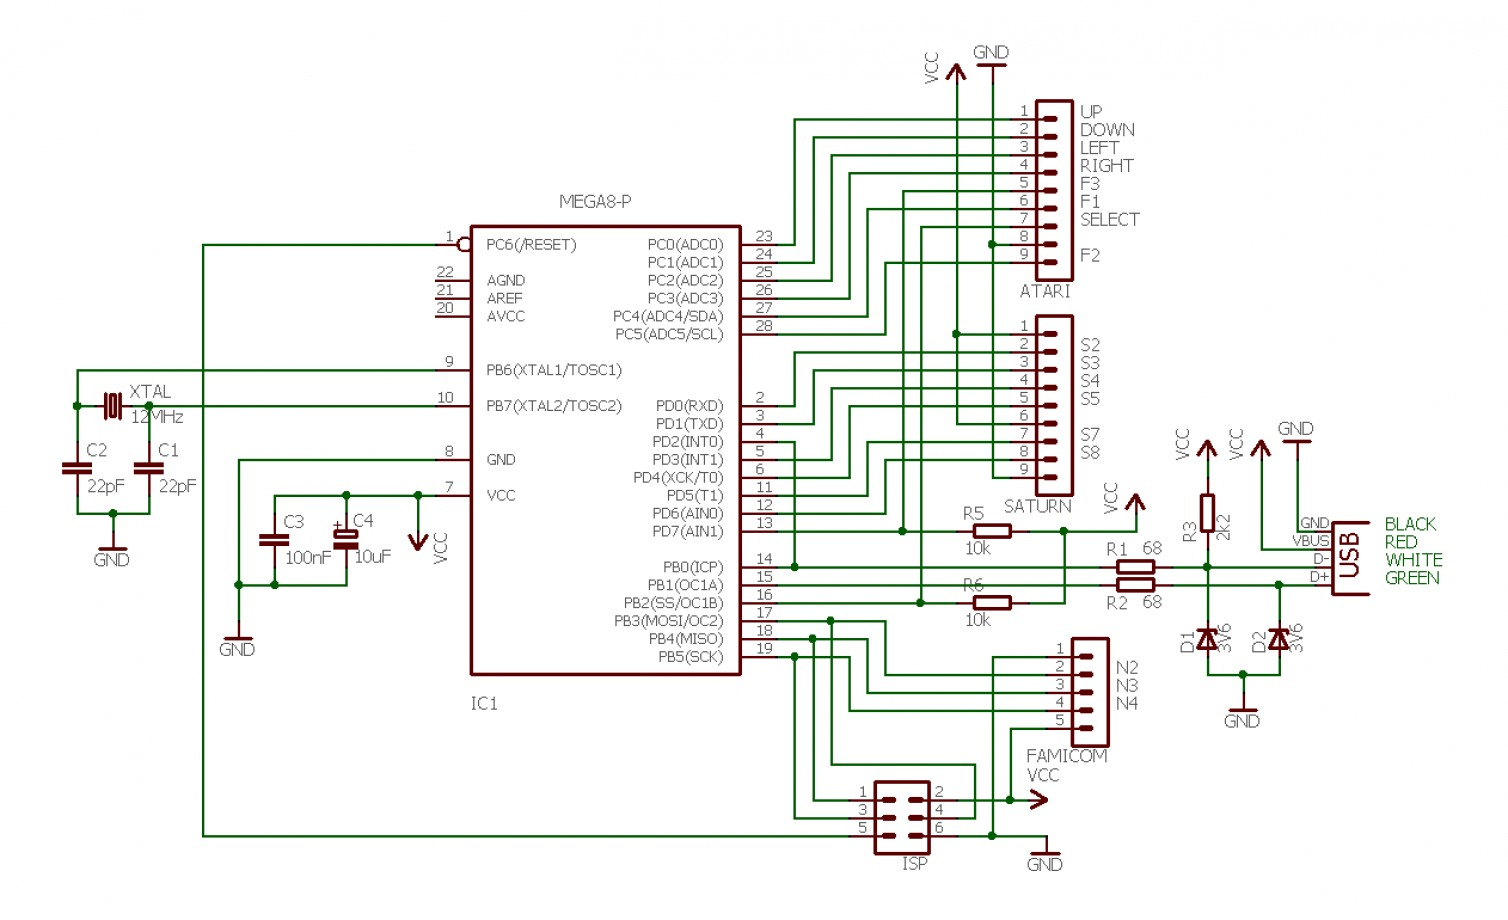 Pleasant Wiring Diagram For Ps2 Basic Electronics Wiring Diagram Wiring Digital Resources Indicompassionincorg